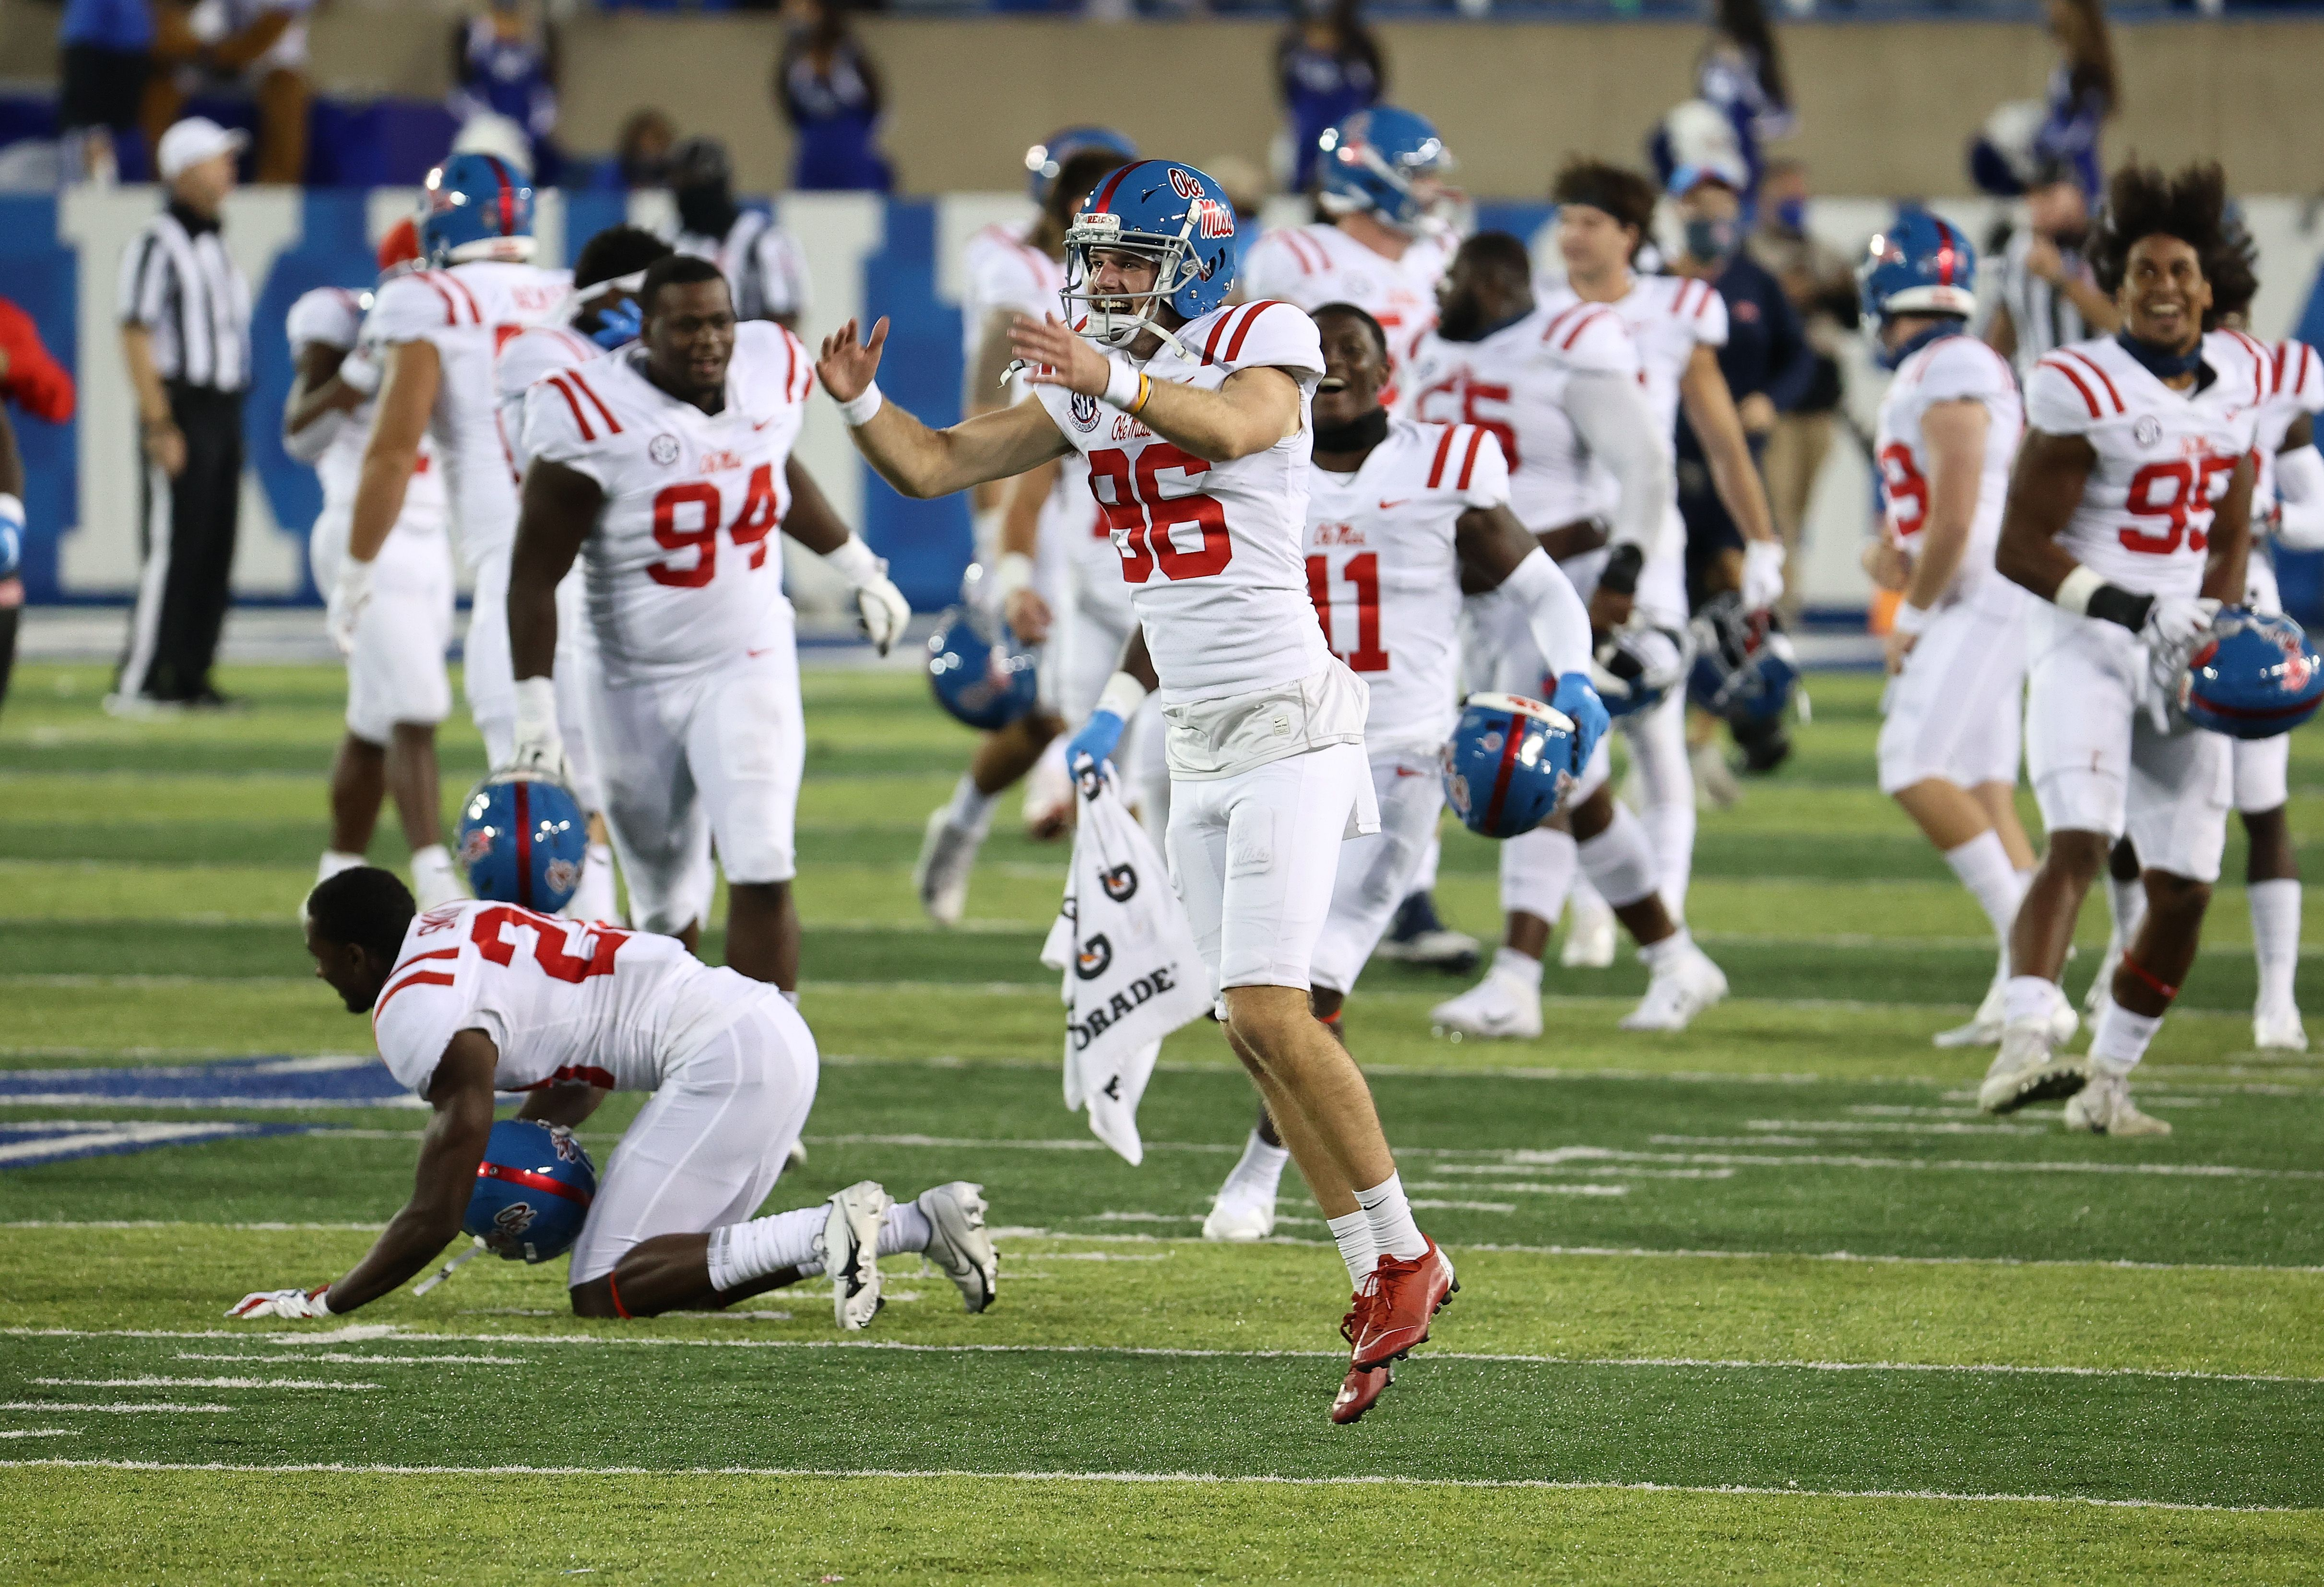 Mac Brown #86 of the Ole Miss Rebels celebrates after the 42-41 OT win over the Kentucky Wildcats at Commonwealth Stadium on October 03, 2020 in Lexington, Kentucky.